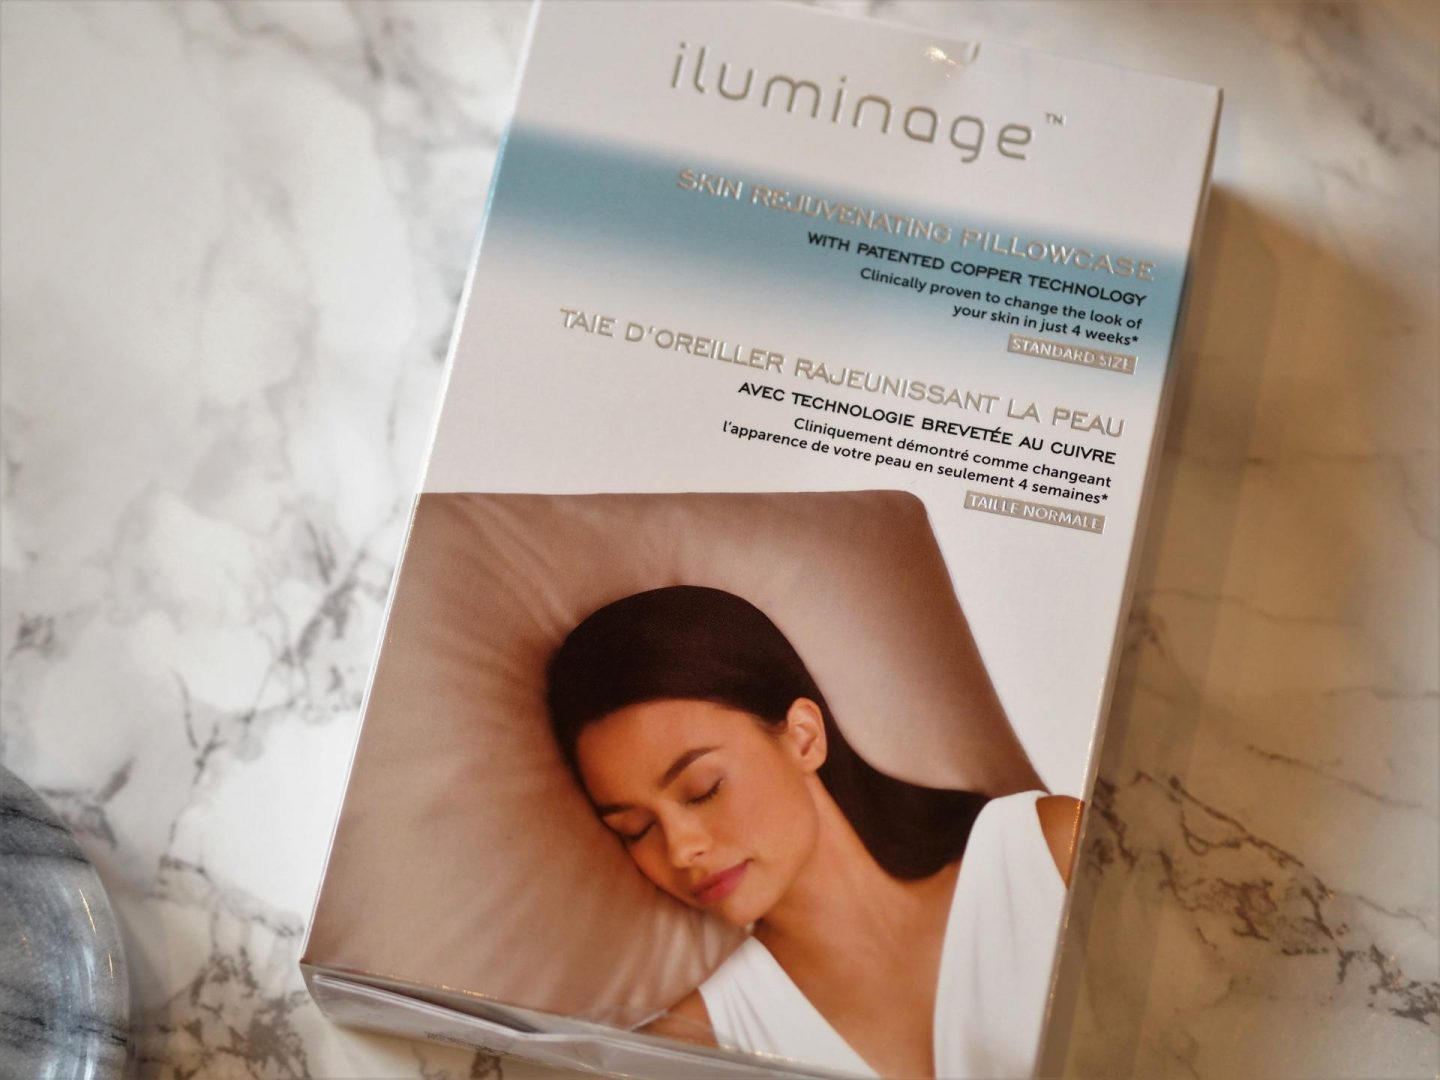 At Home Hair Removal - Product: Illuminage Precise Touch Permanent Hair Remover